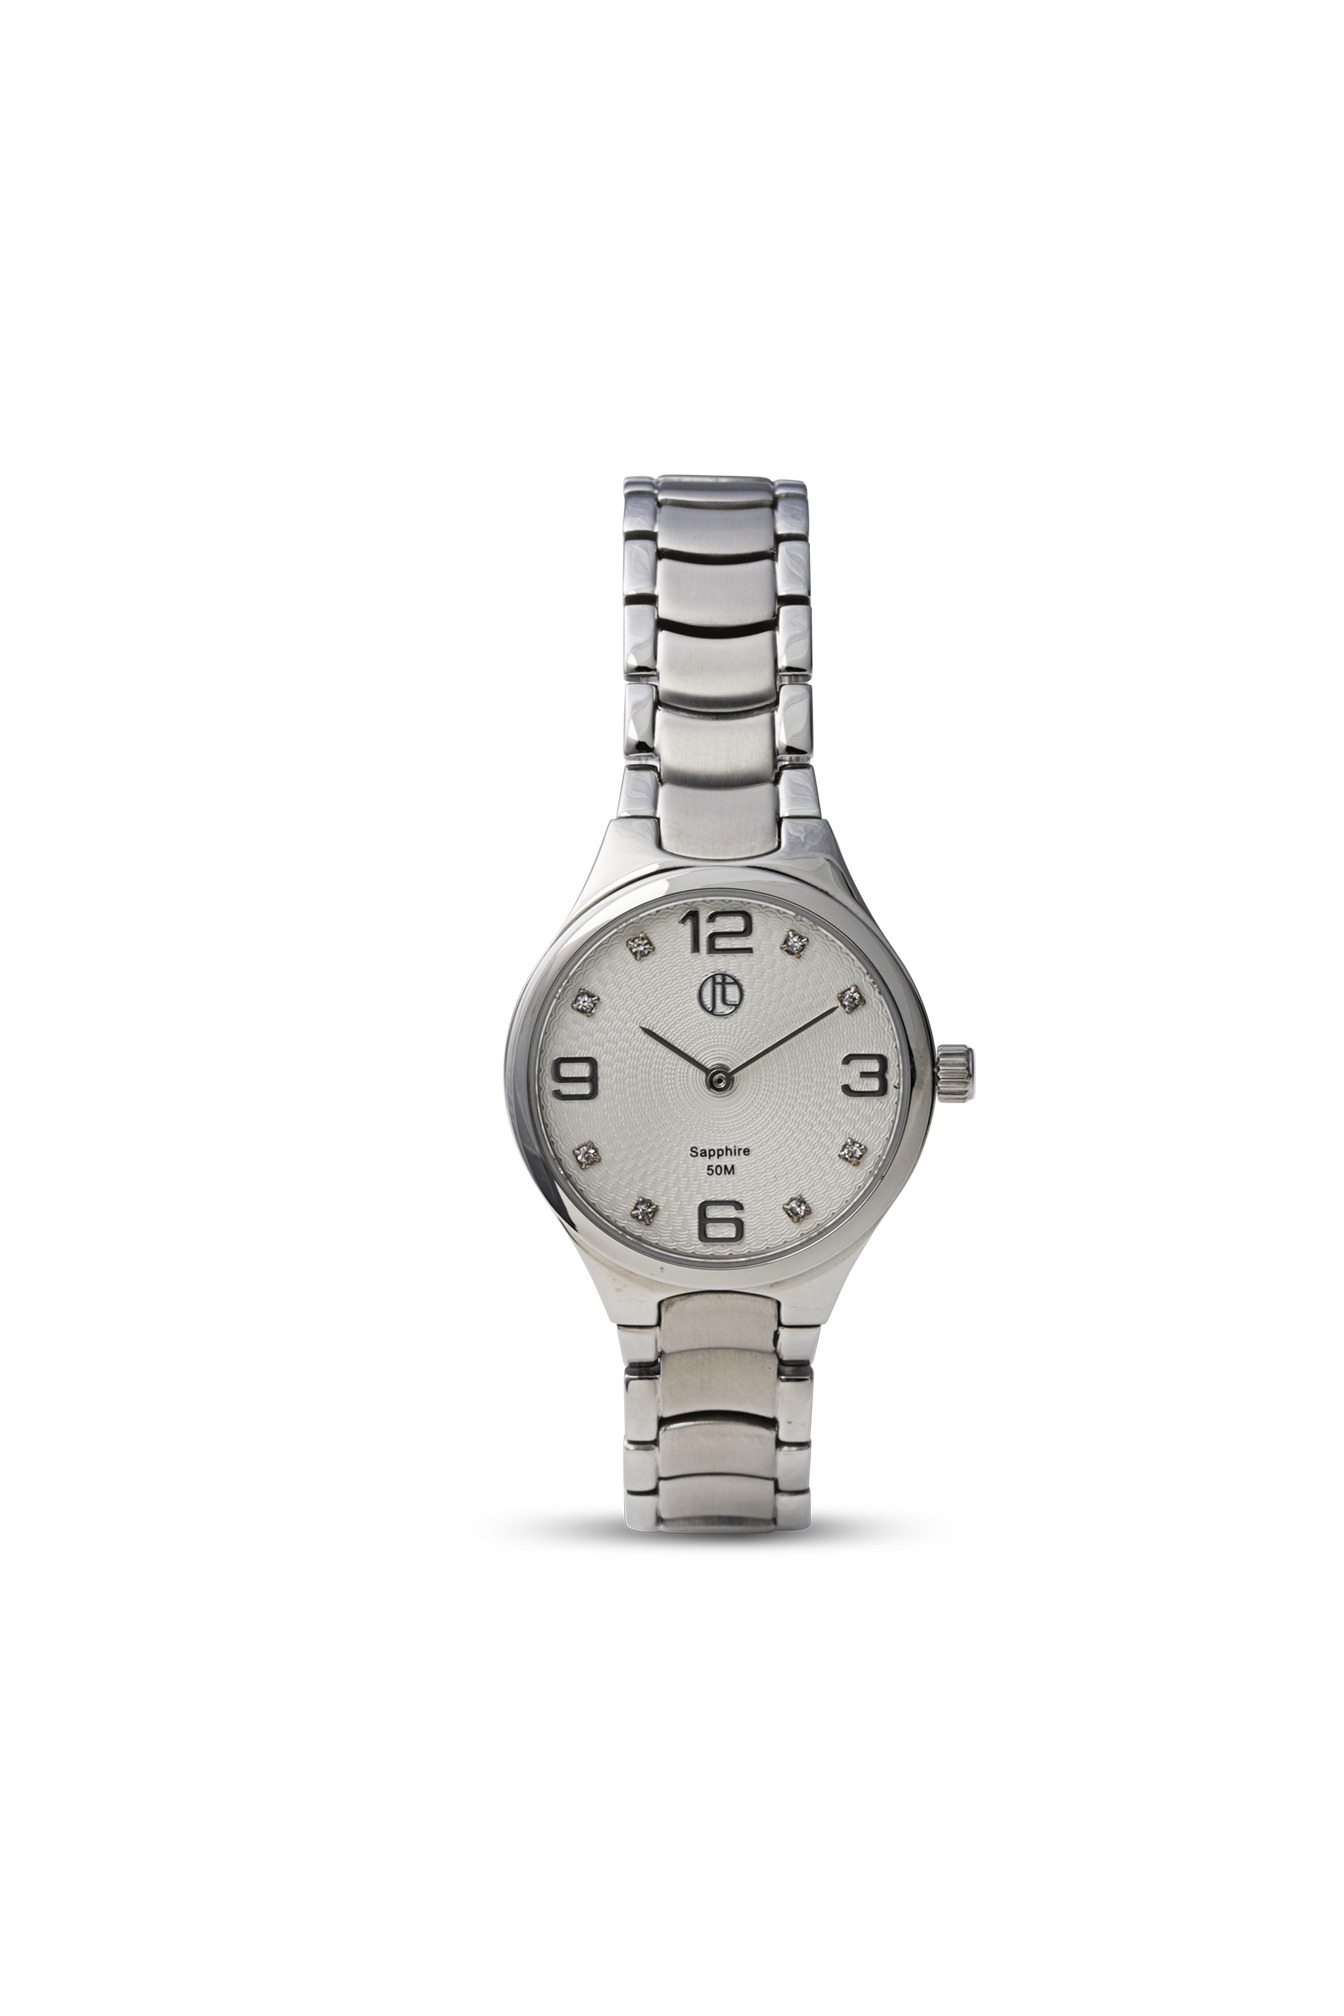 Image of Jeweltime ur - 2202-A